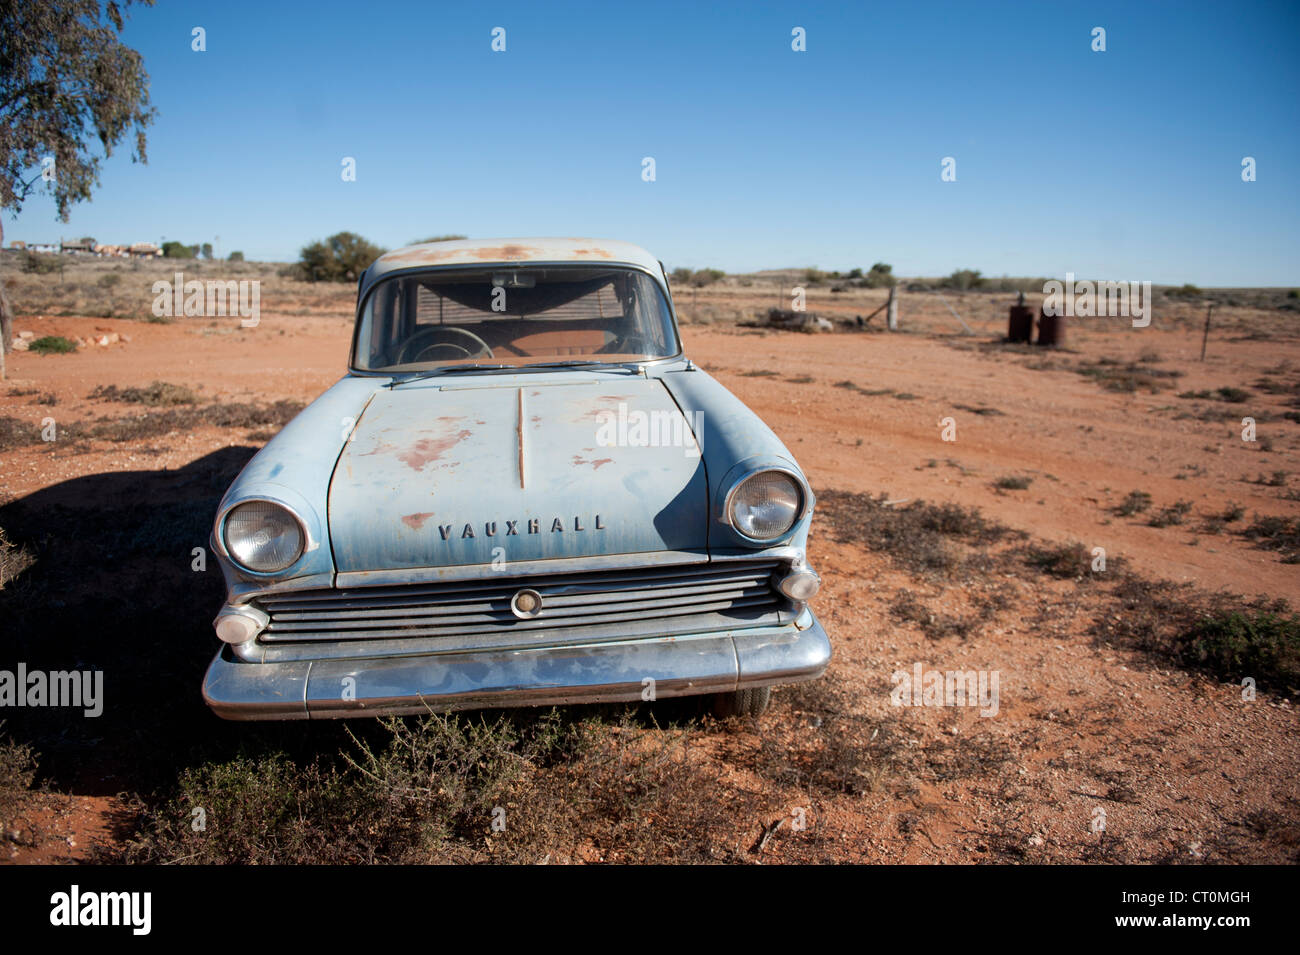 Vintage Vauxhall car parked in Silverton, Outback New South Wales, famous as locations of films like Mad Max 2 oder - Stock Image